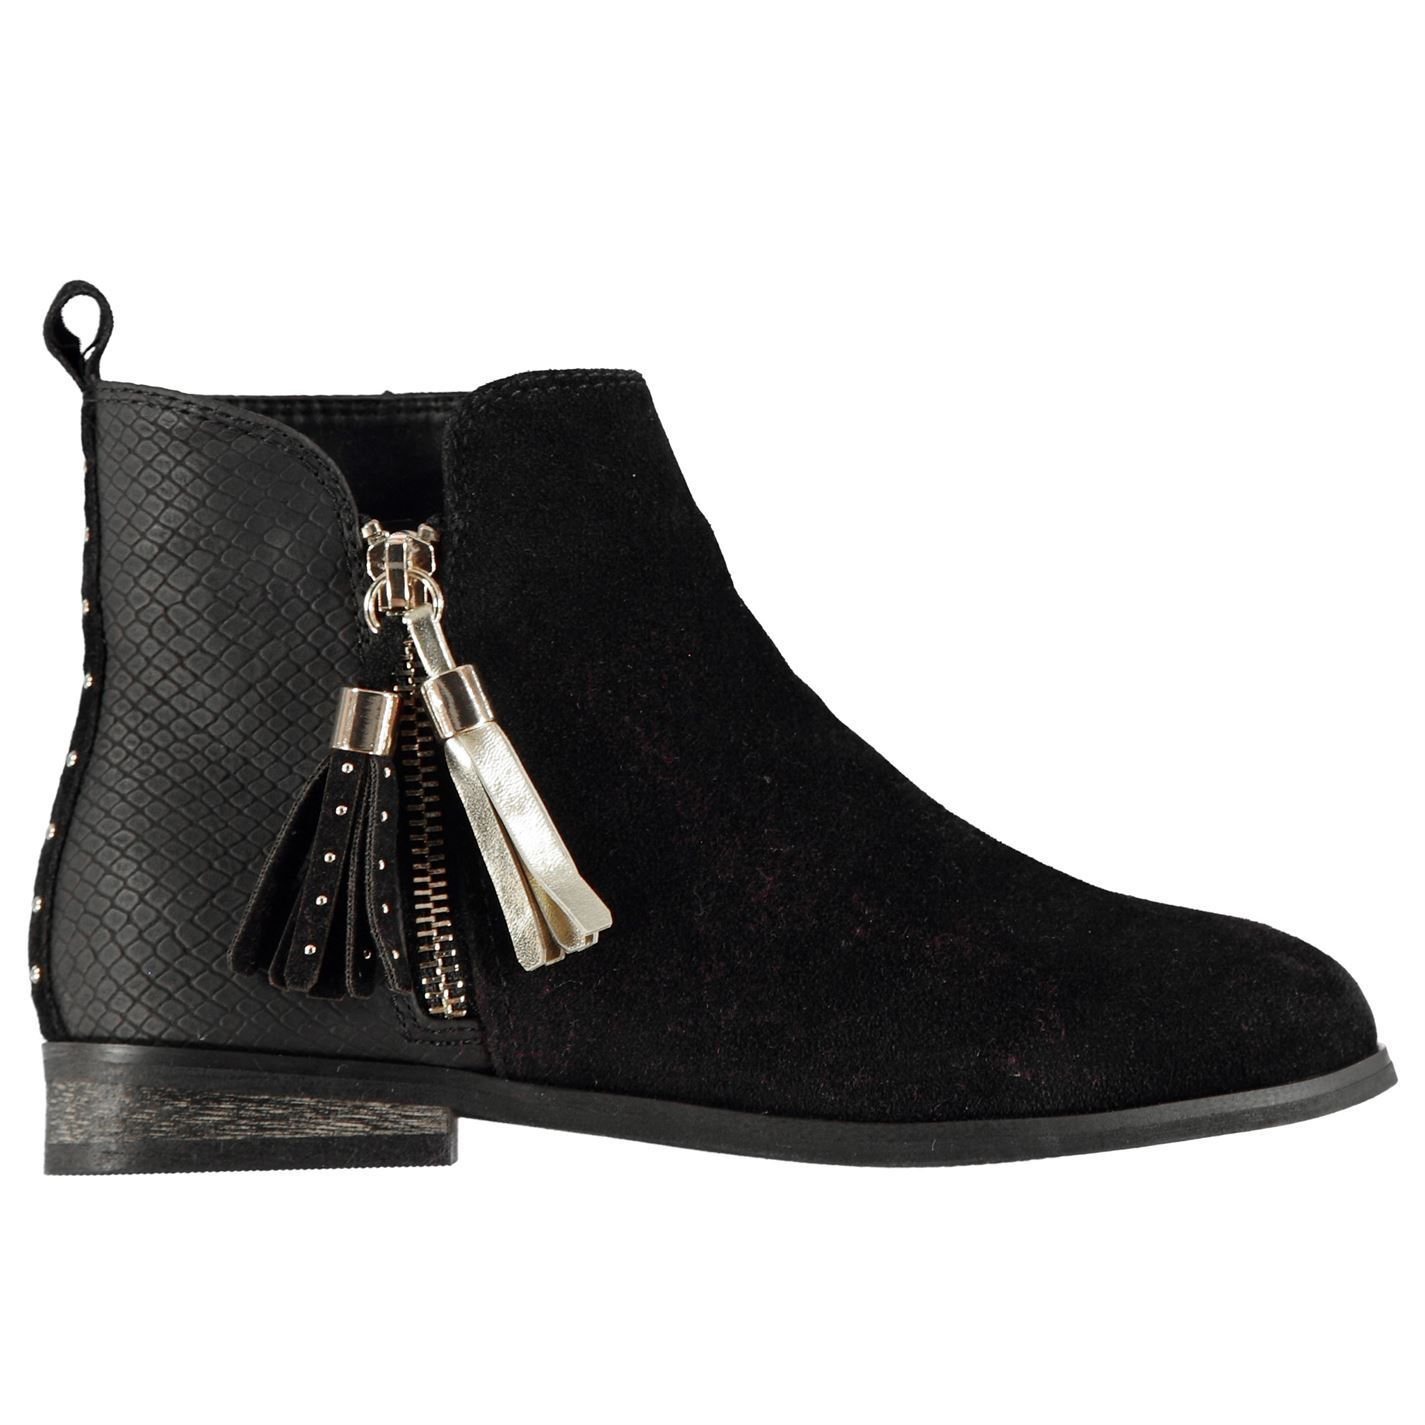 Details about Miso Sophia Zip Ankle Boots Childs Girls Black Shoes Boot  Kids Footwear